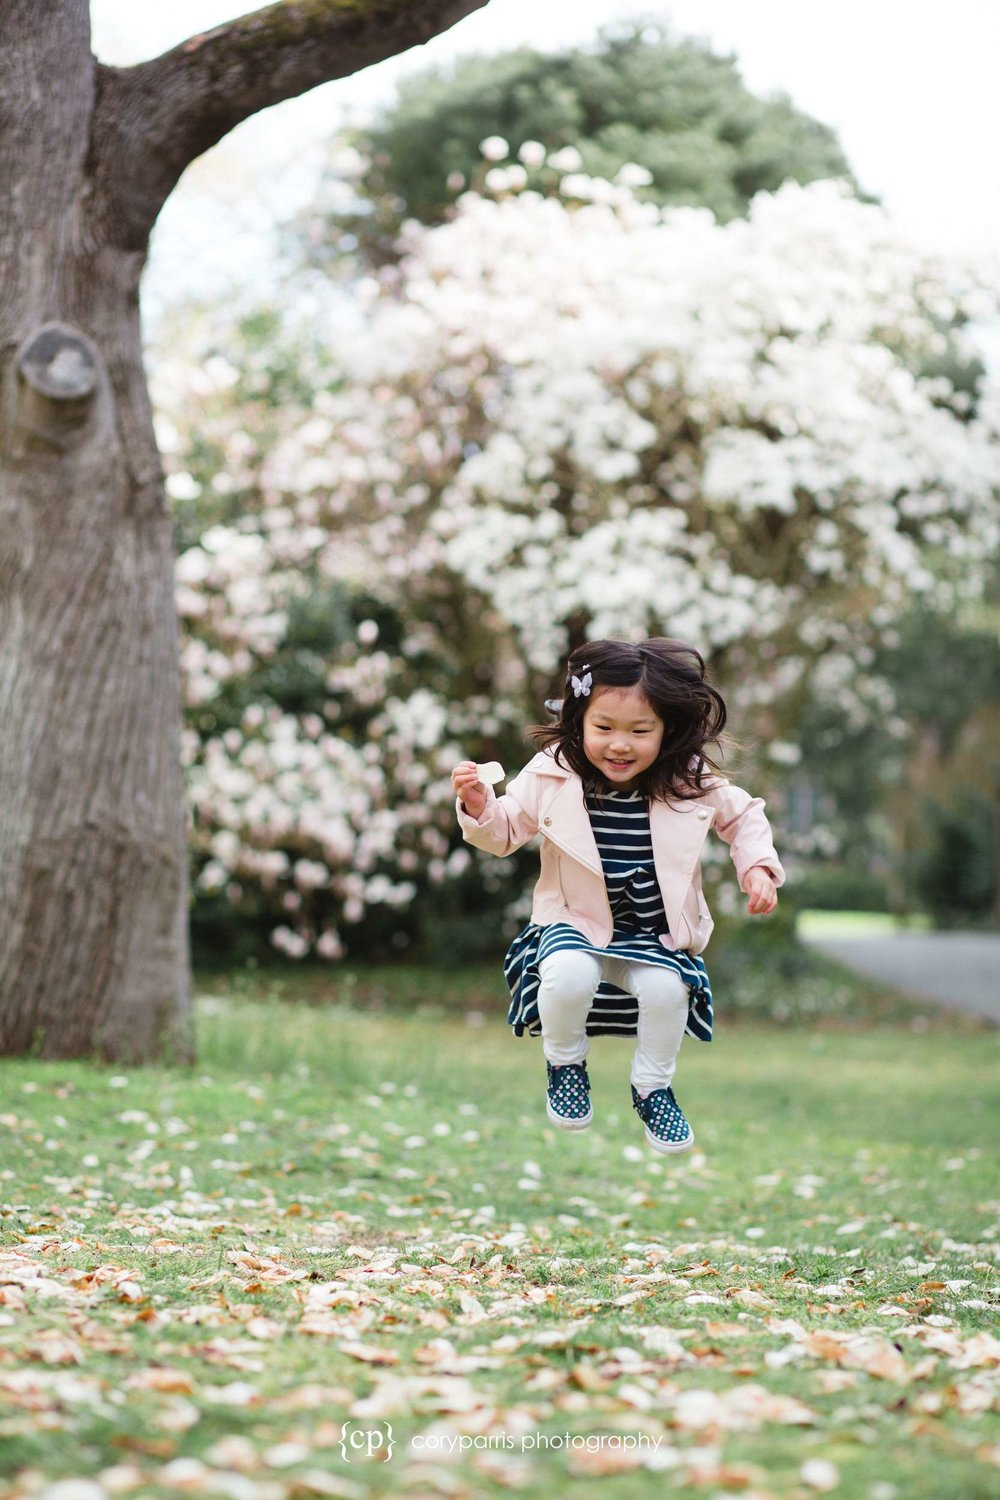 Jumping little girl portrait